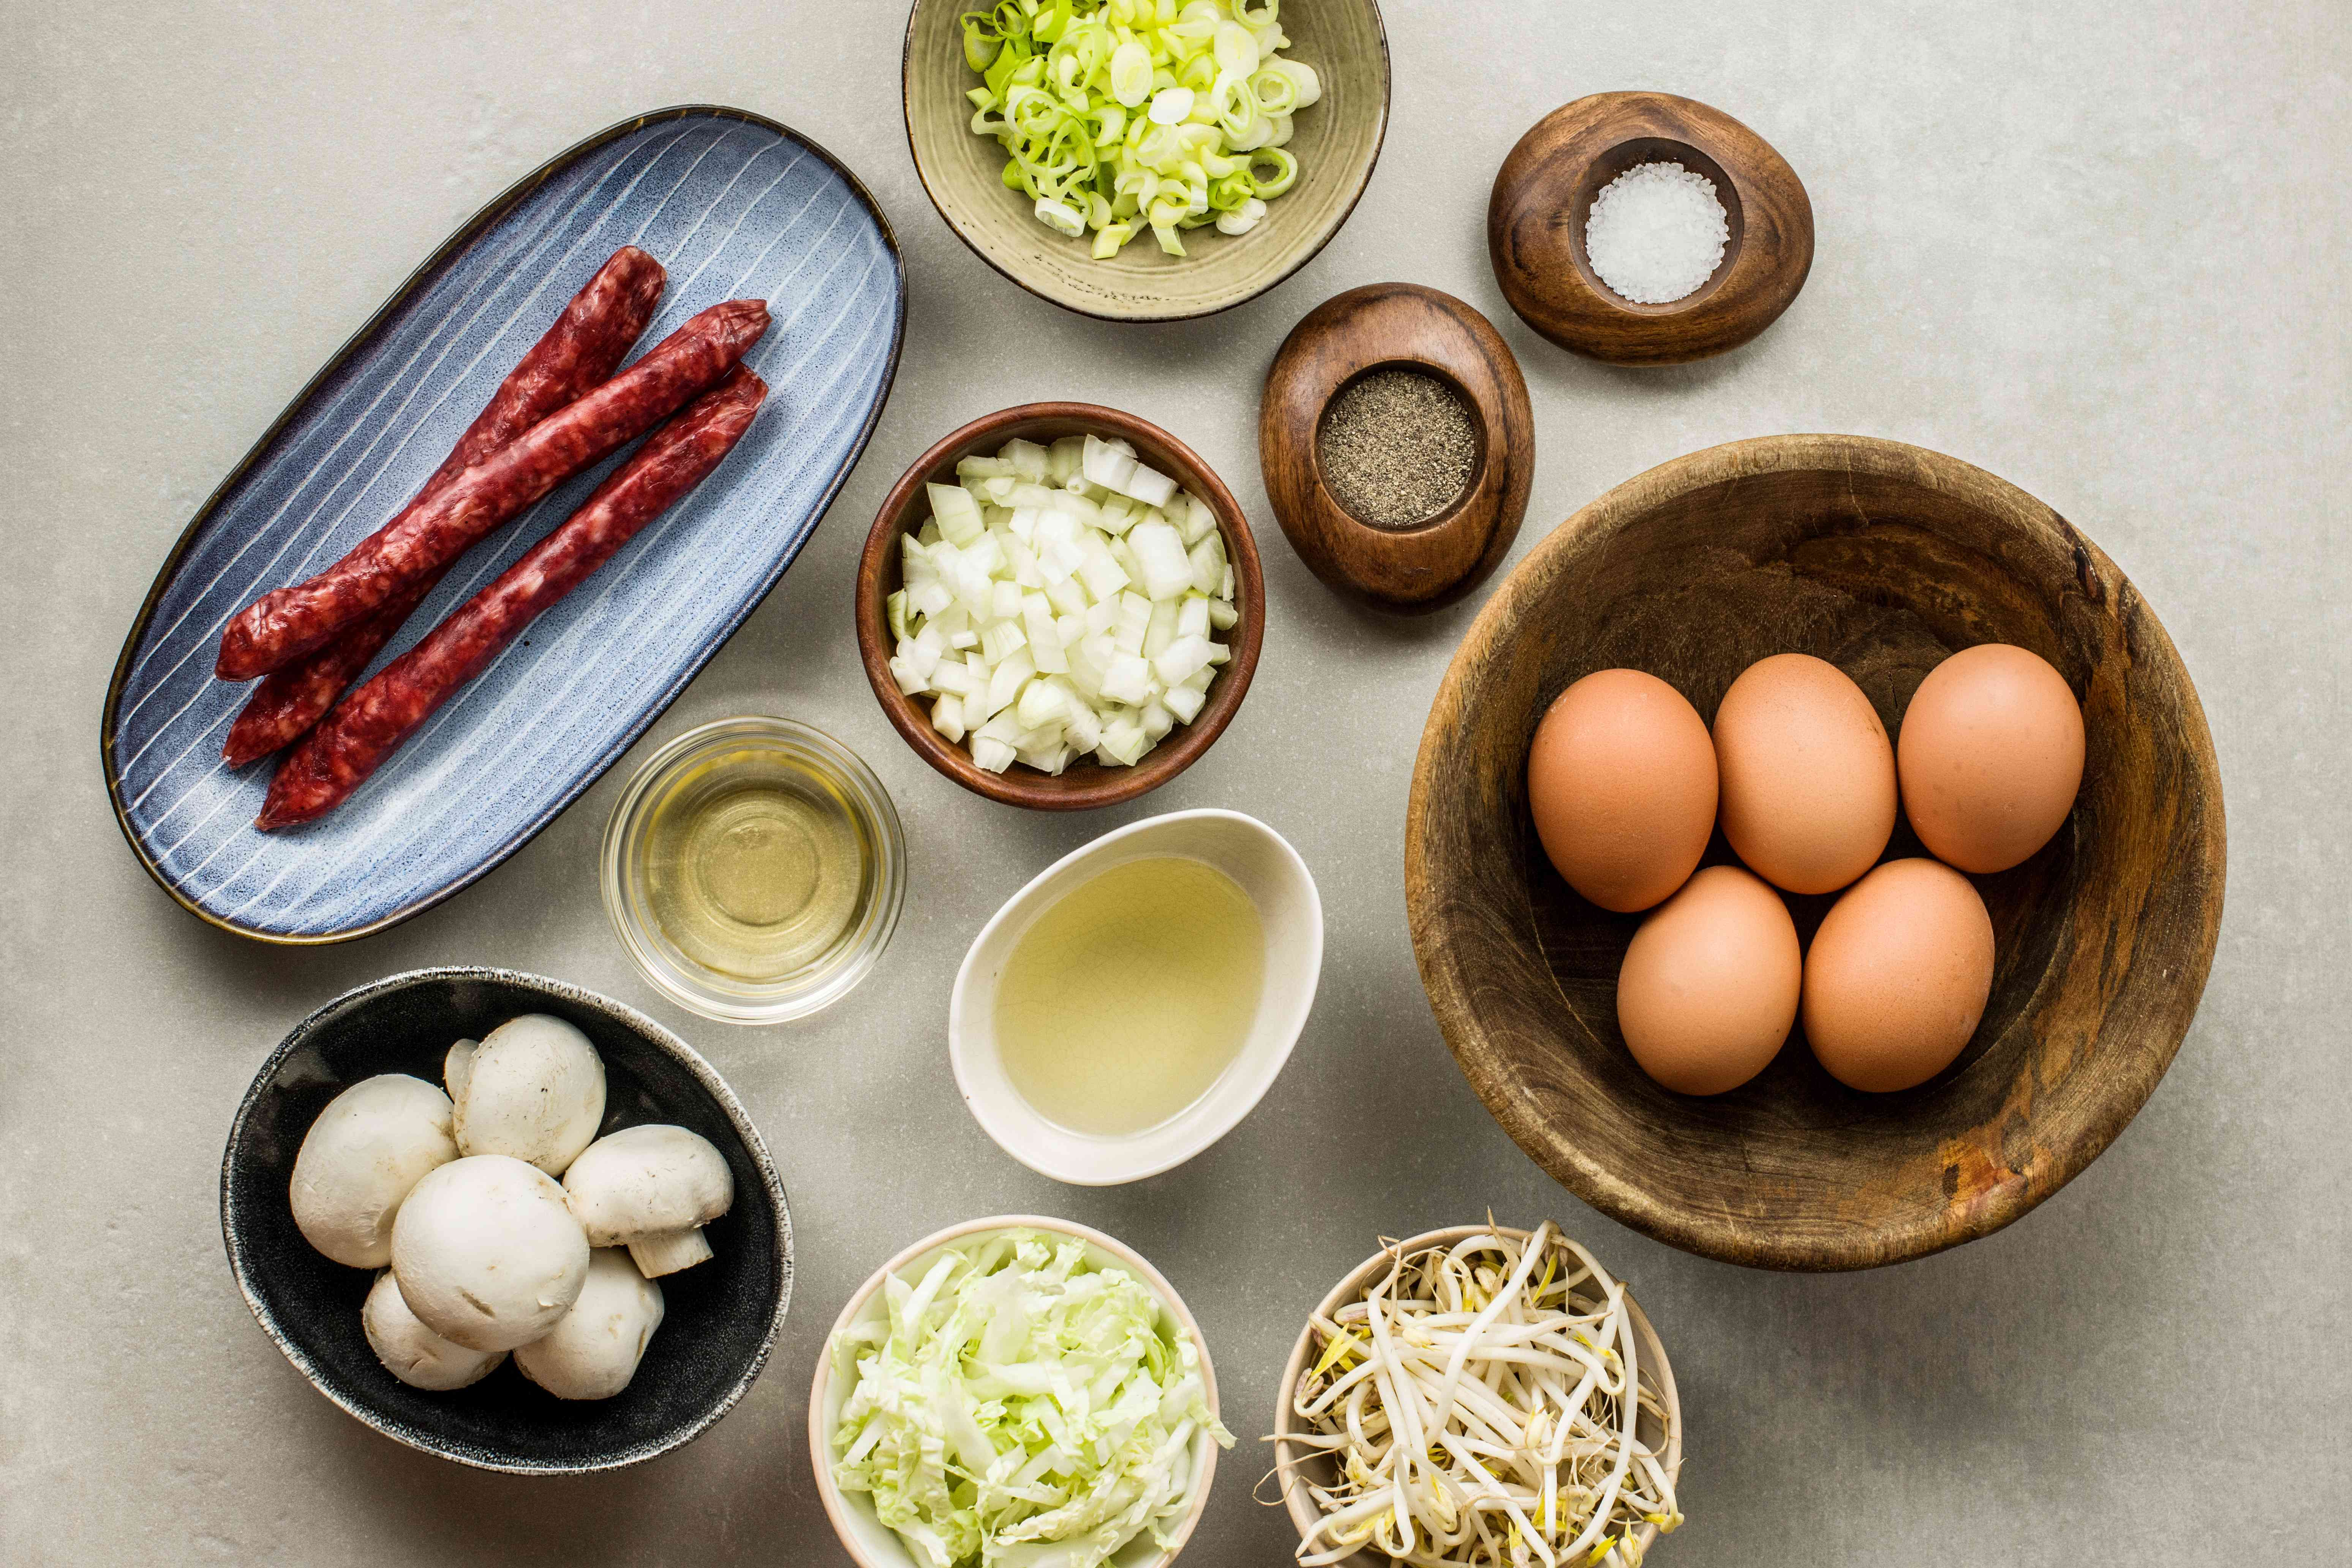 Ingredients for egg foo yung